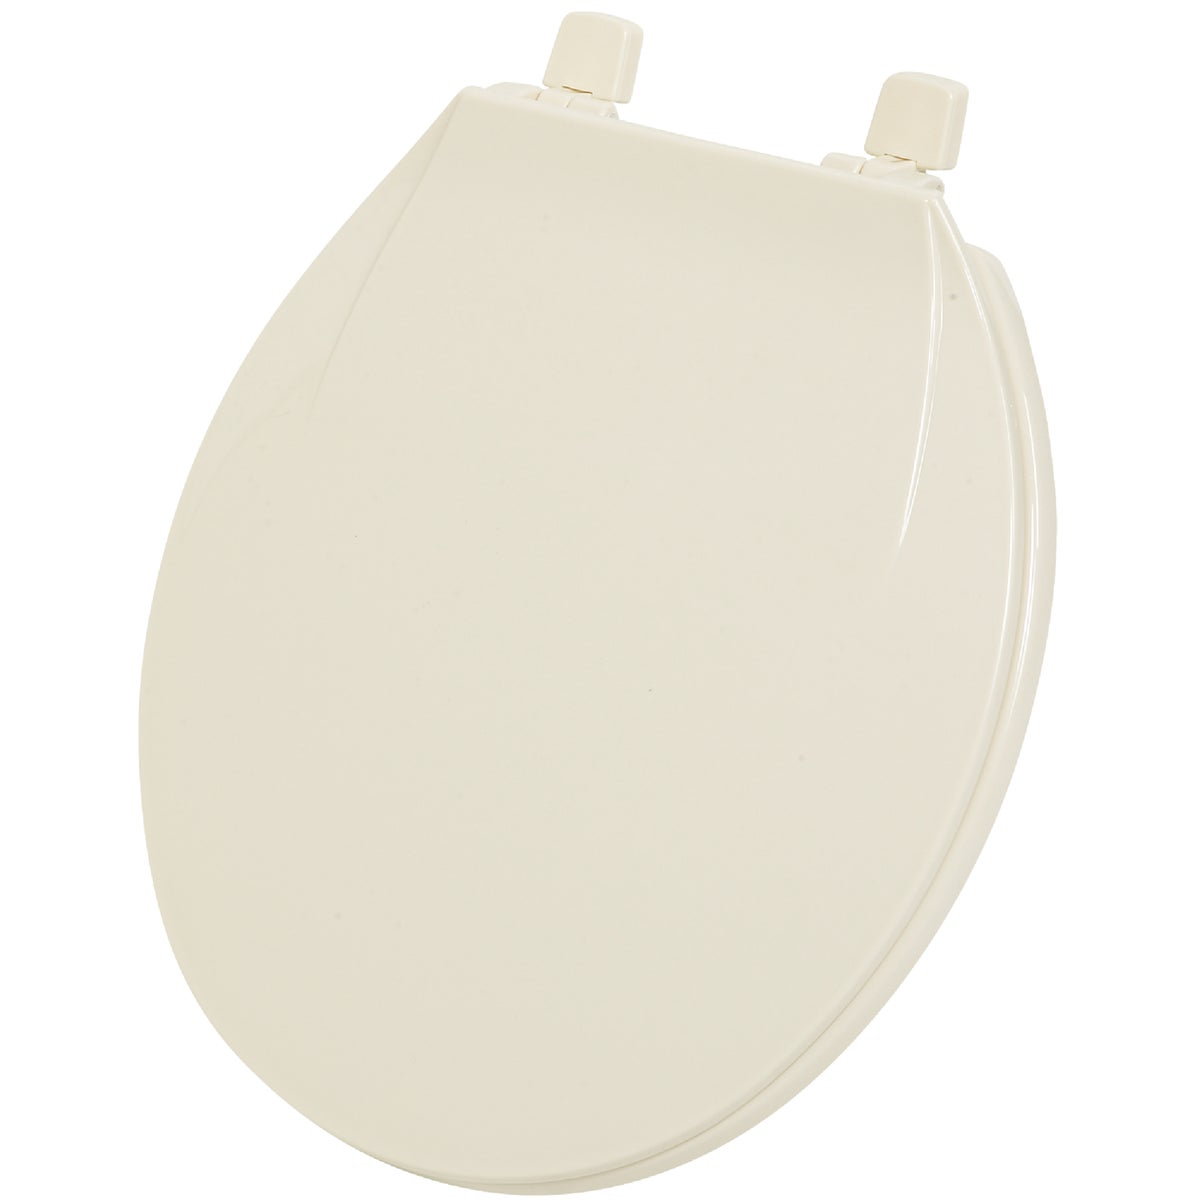 BONE ROUND PLAS SEAT - 445405 by Do it Best